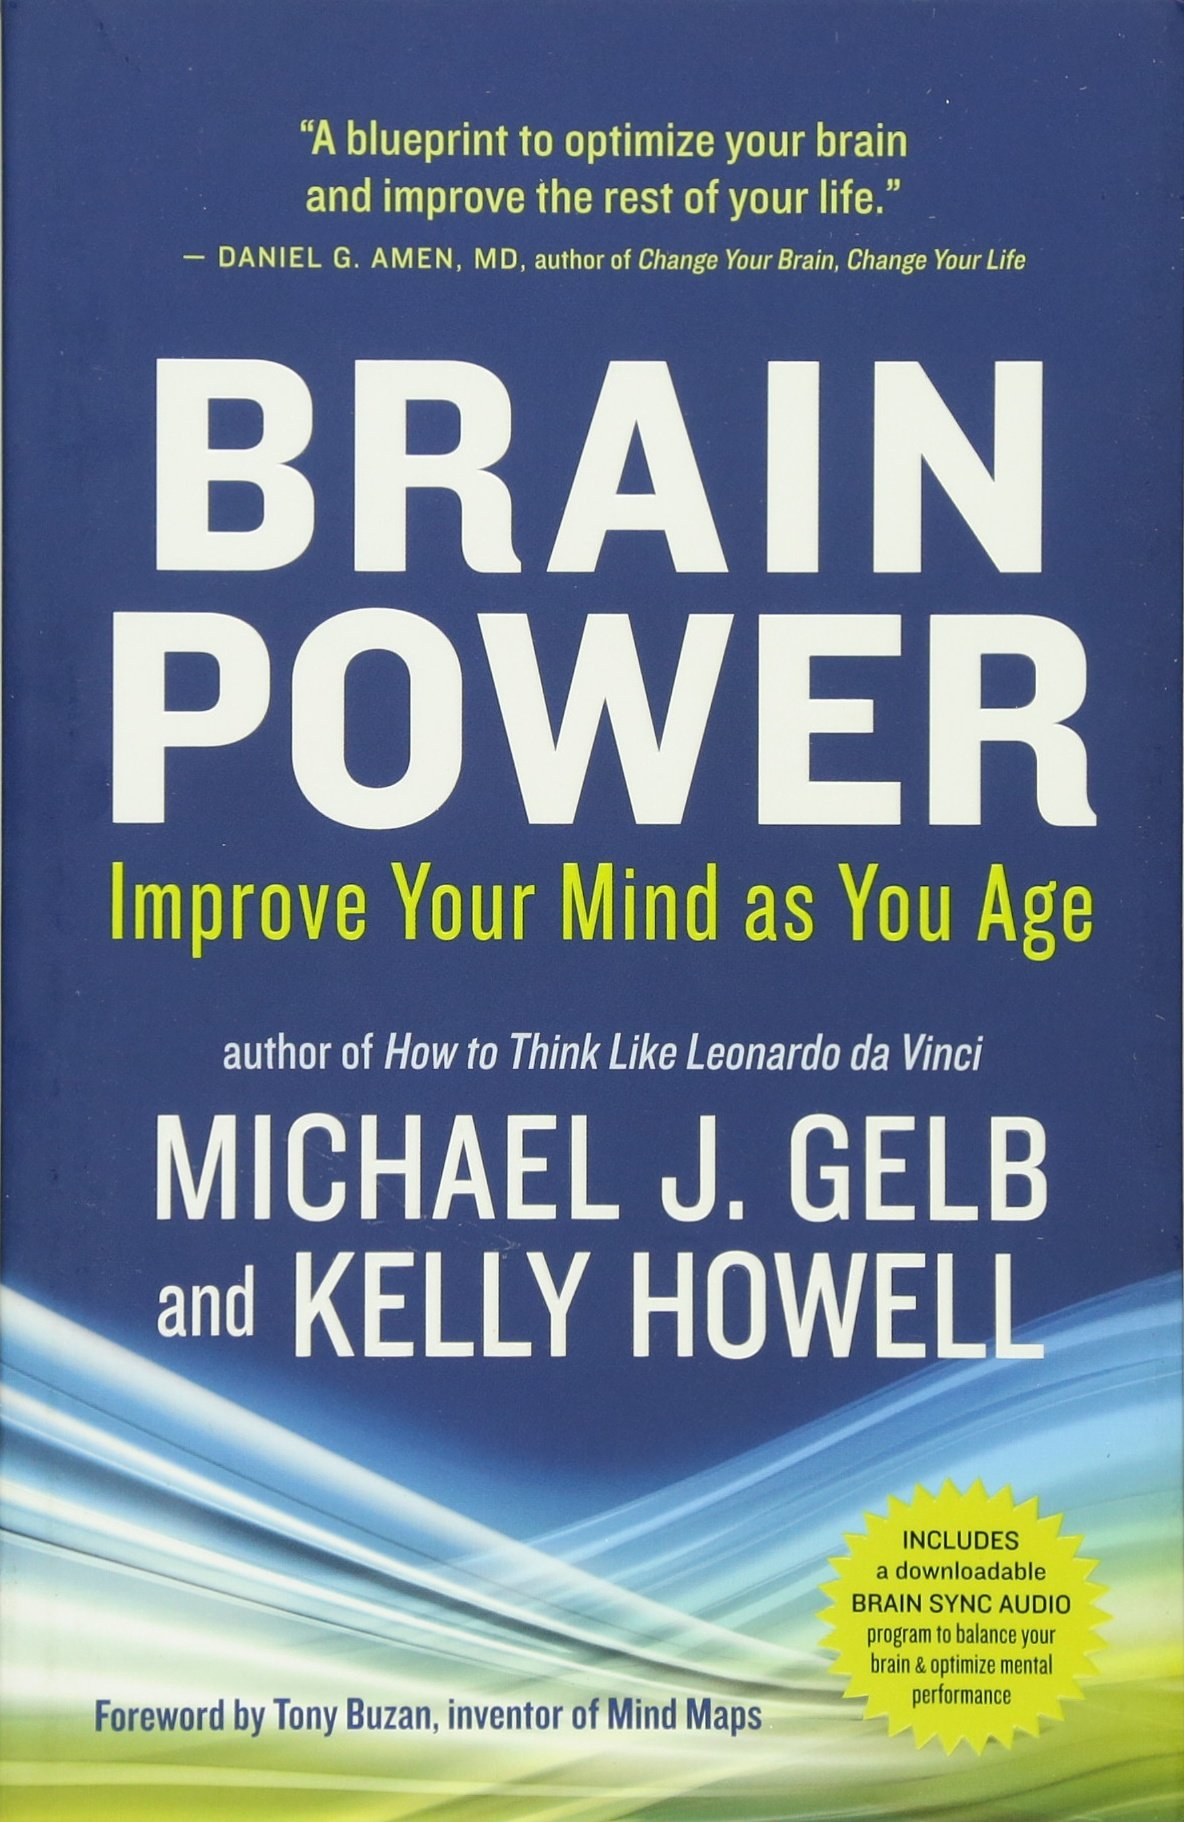 The power of the mind in performance